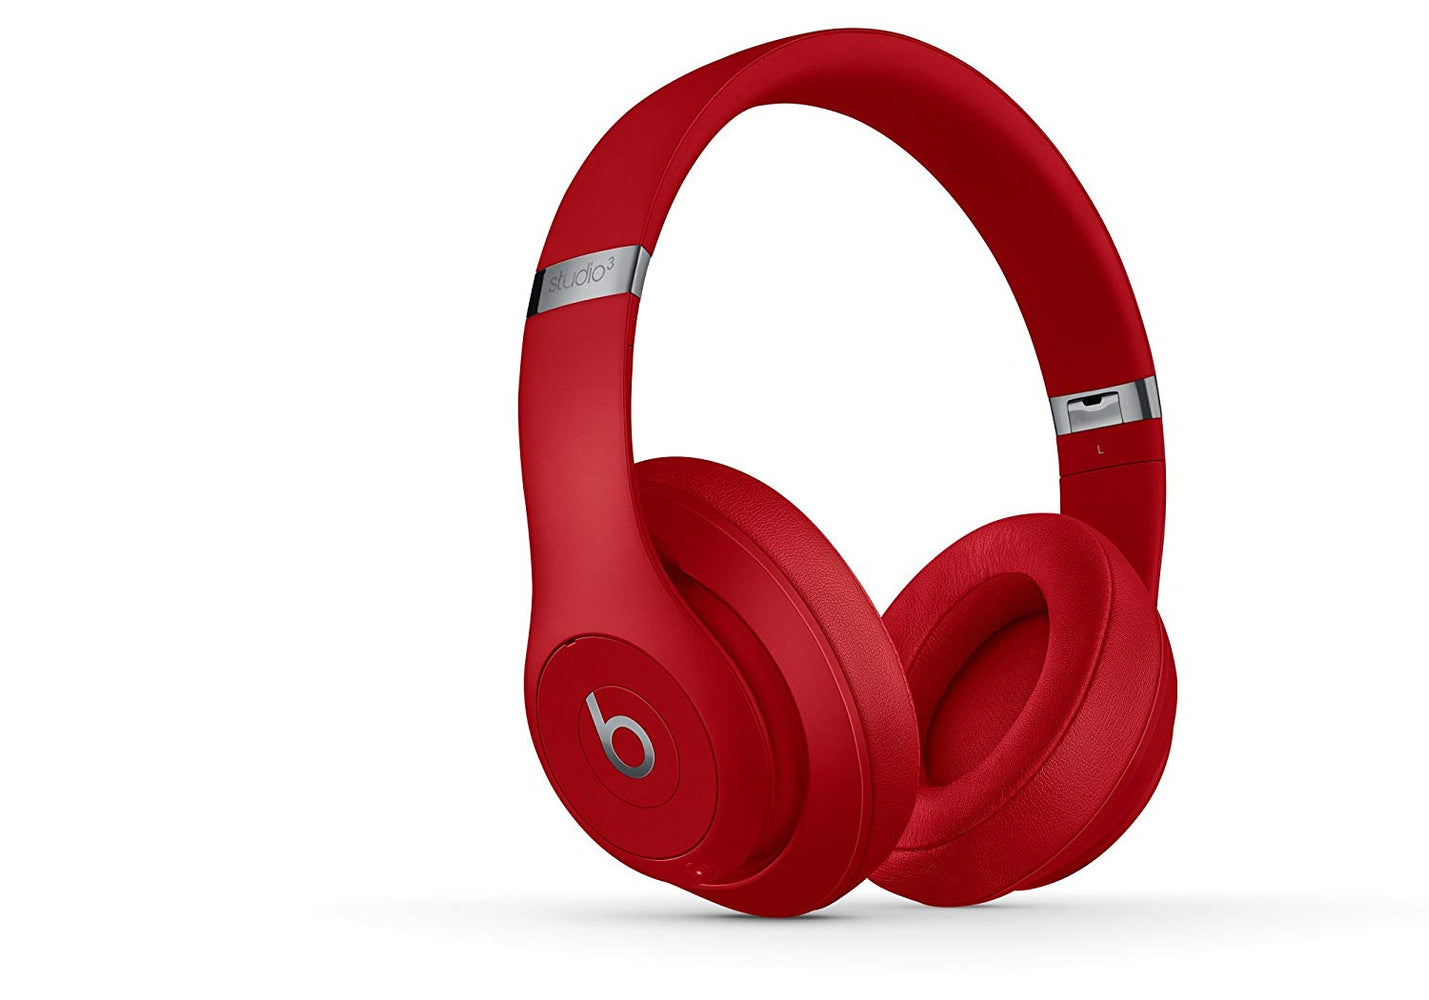 Beats By Dr. Dre Beats Studio3 Wireless Over-Ear Headphones - Red (Certified Refurbished)